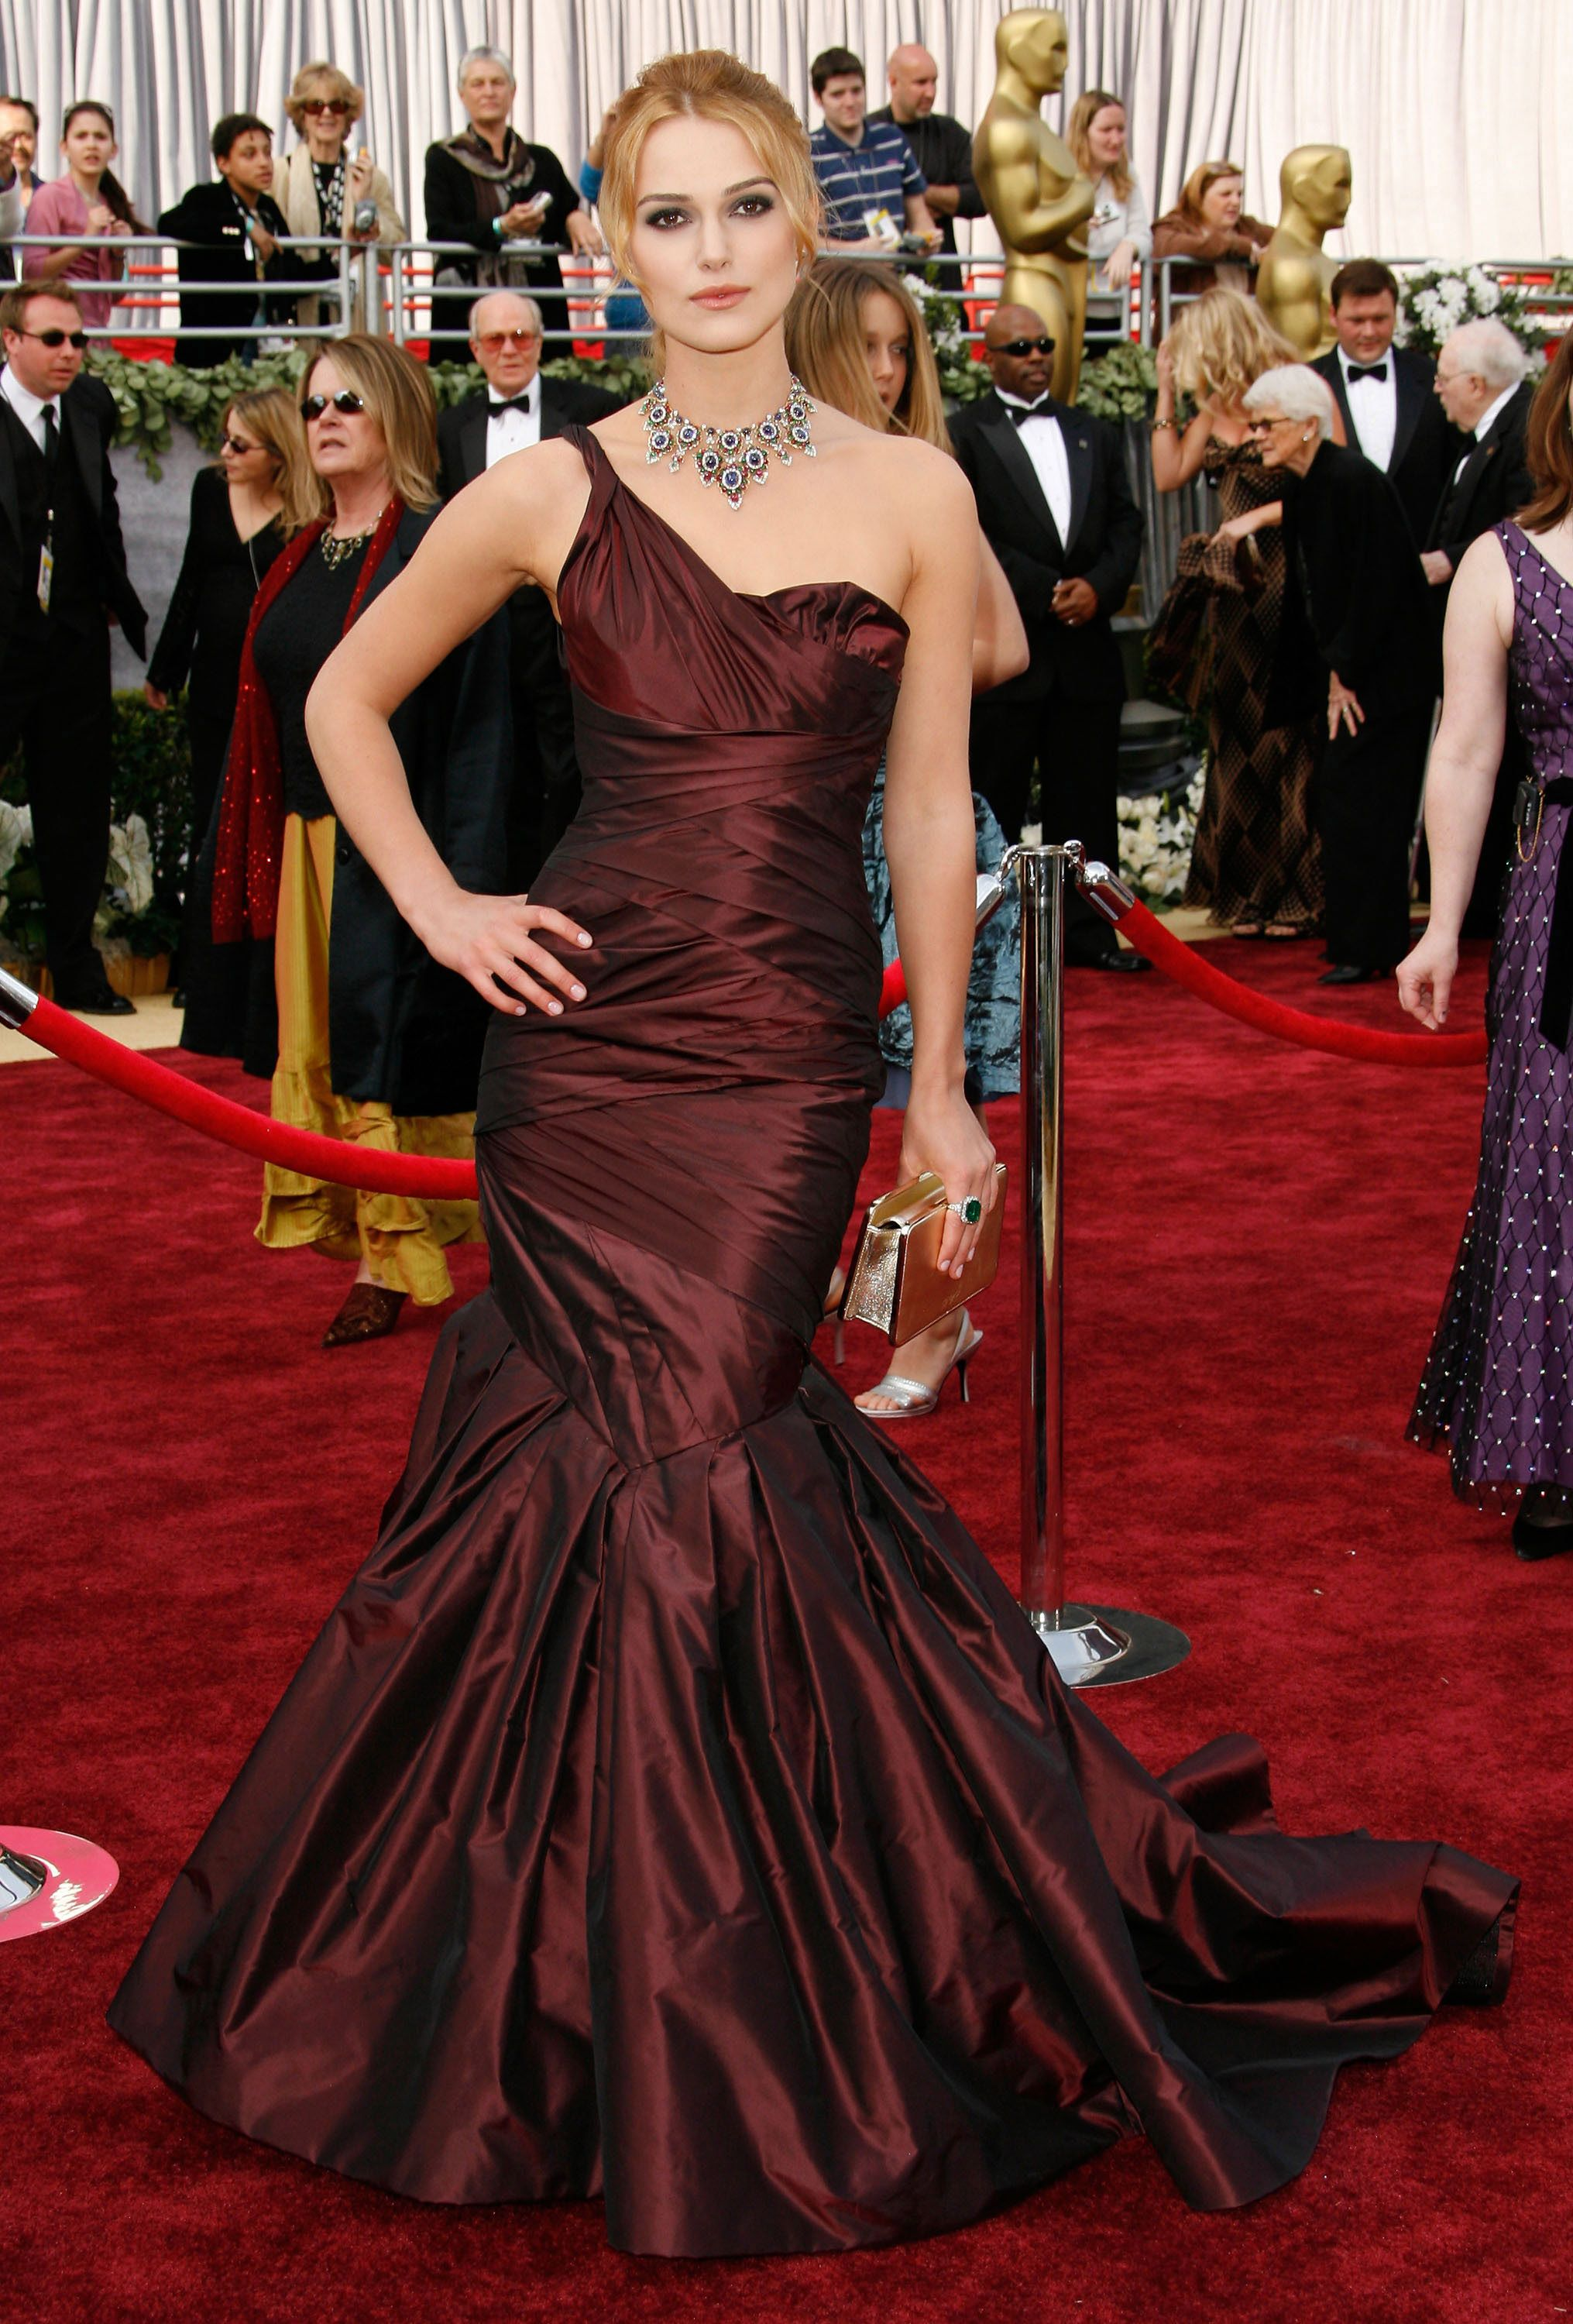 Forum on this topic: 2014 Oscars Red Carpet Fashion: Best Celebrity , 2014-oscars-red-carpet-fashion-best-celebrity/